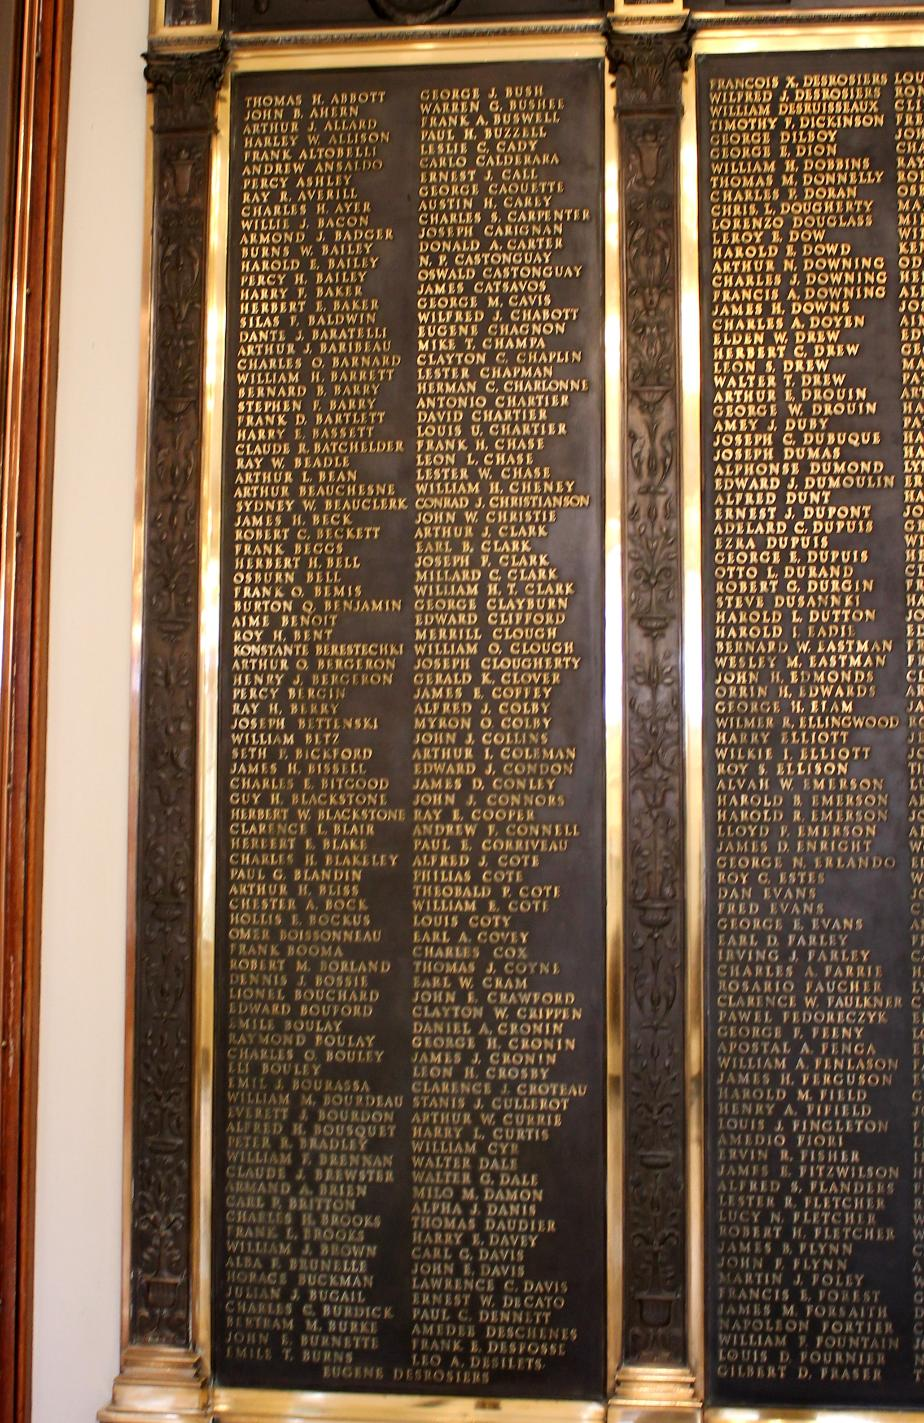 New Hampshire World War I Veterans Honor Roll - New Hampshire State House